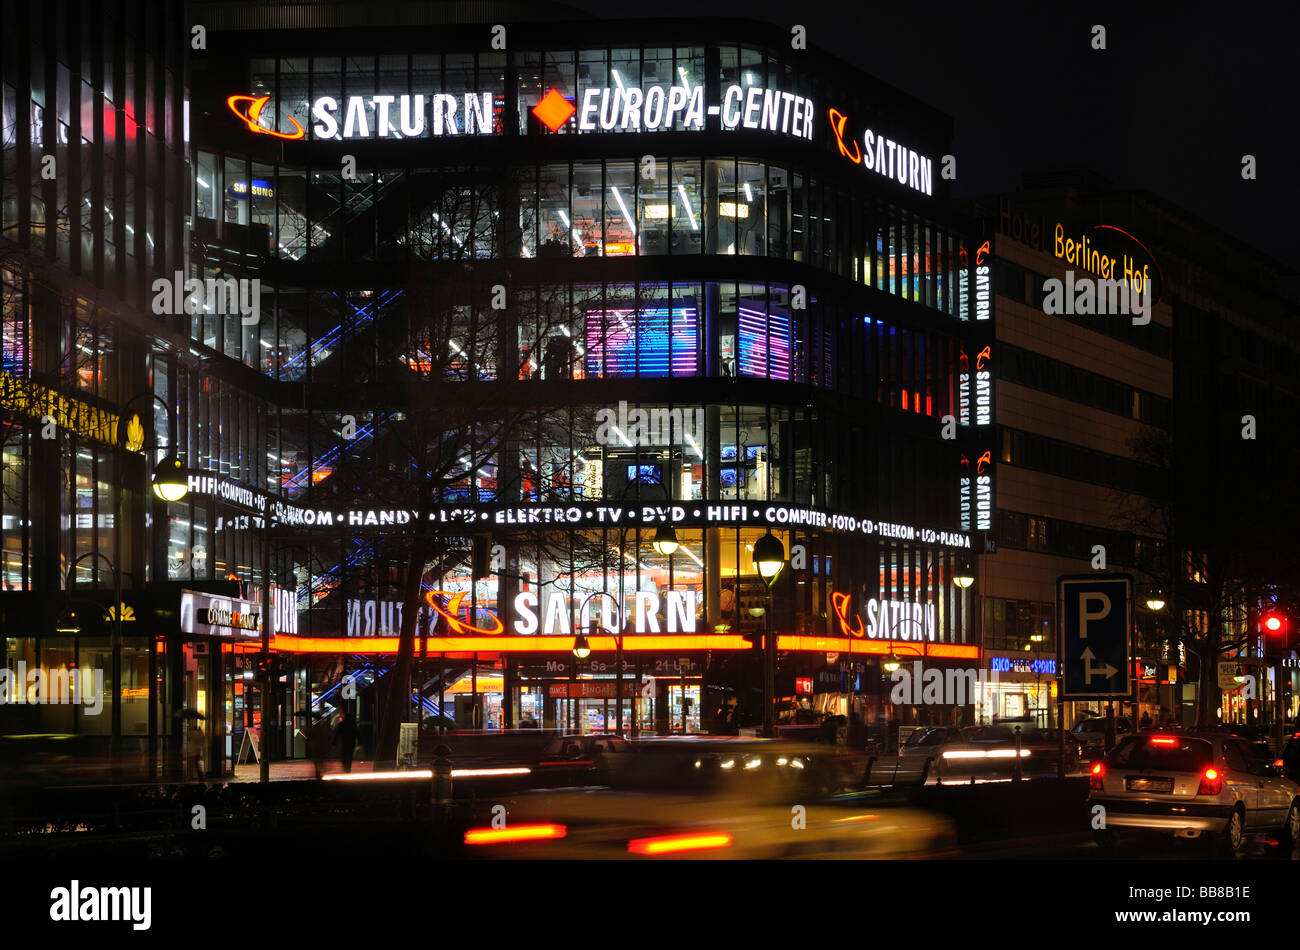 Electronics specialty retailer Saturn flagship store in the